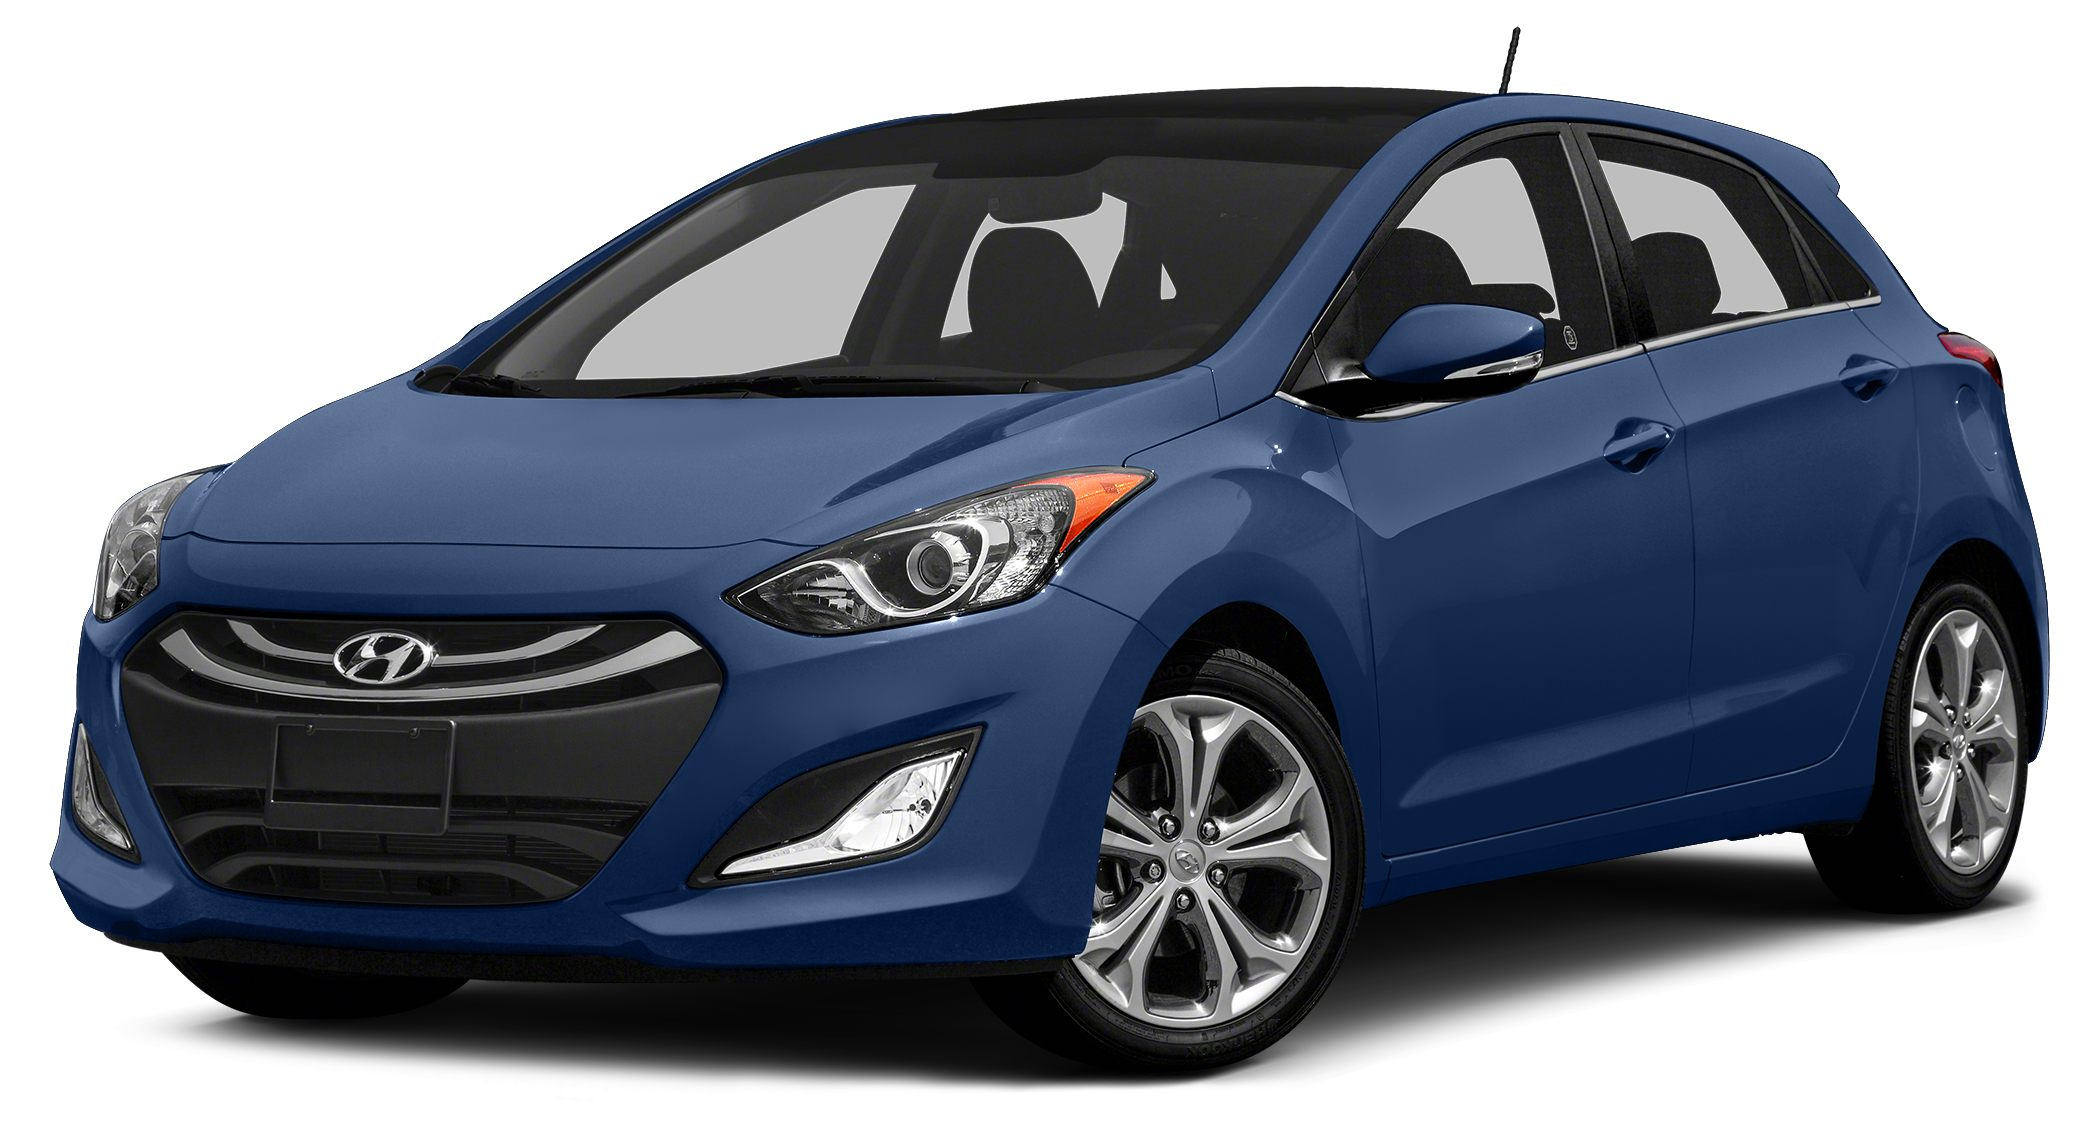 2015 Hyundai Elantra GT Base This one owner economy car with low miles and heated seats is a great